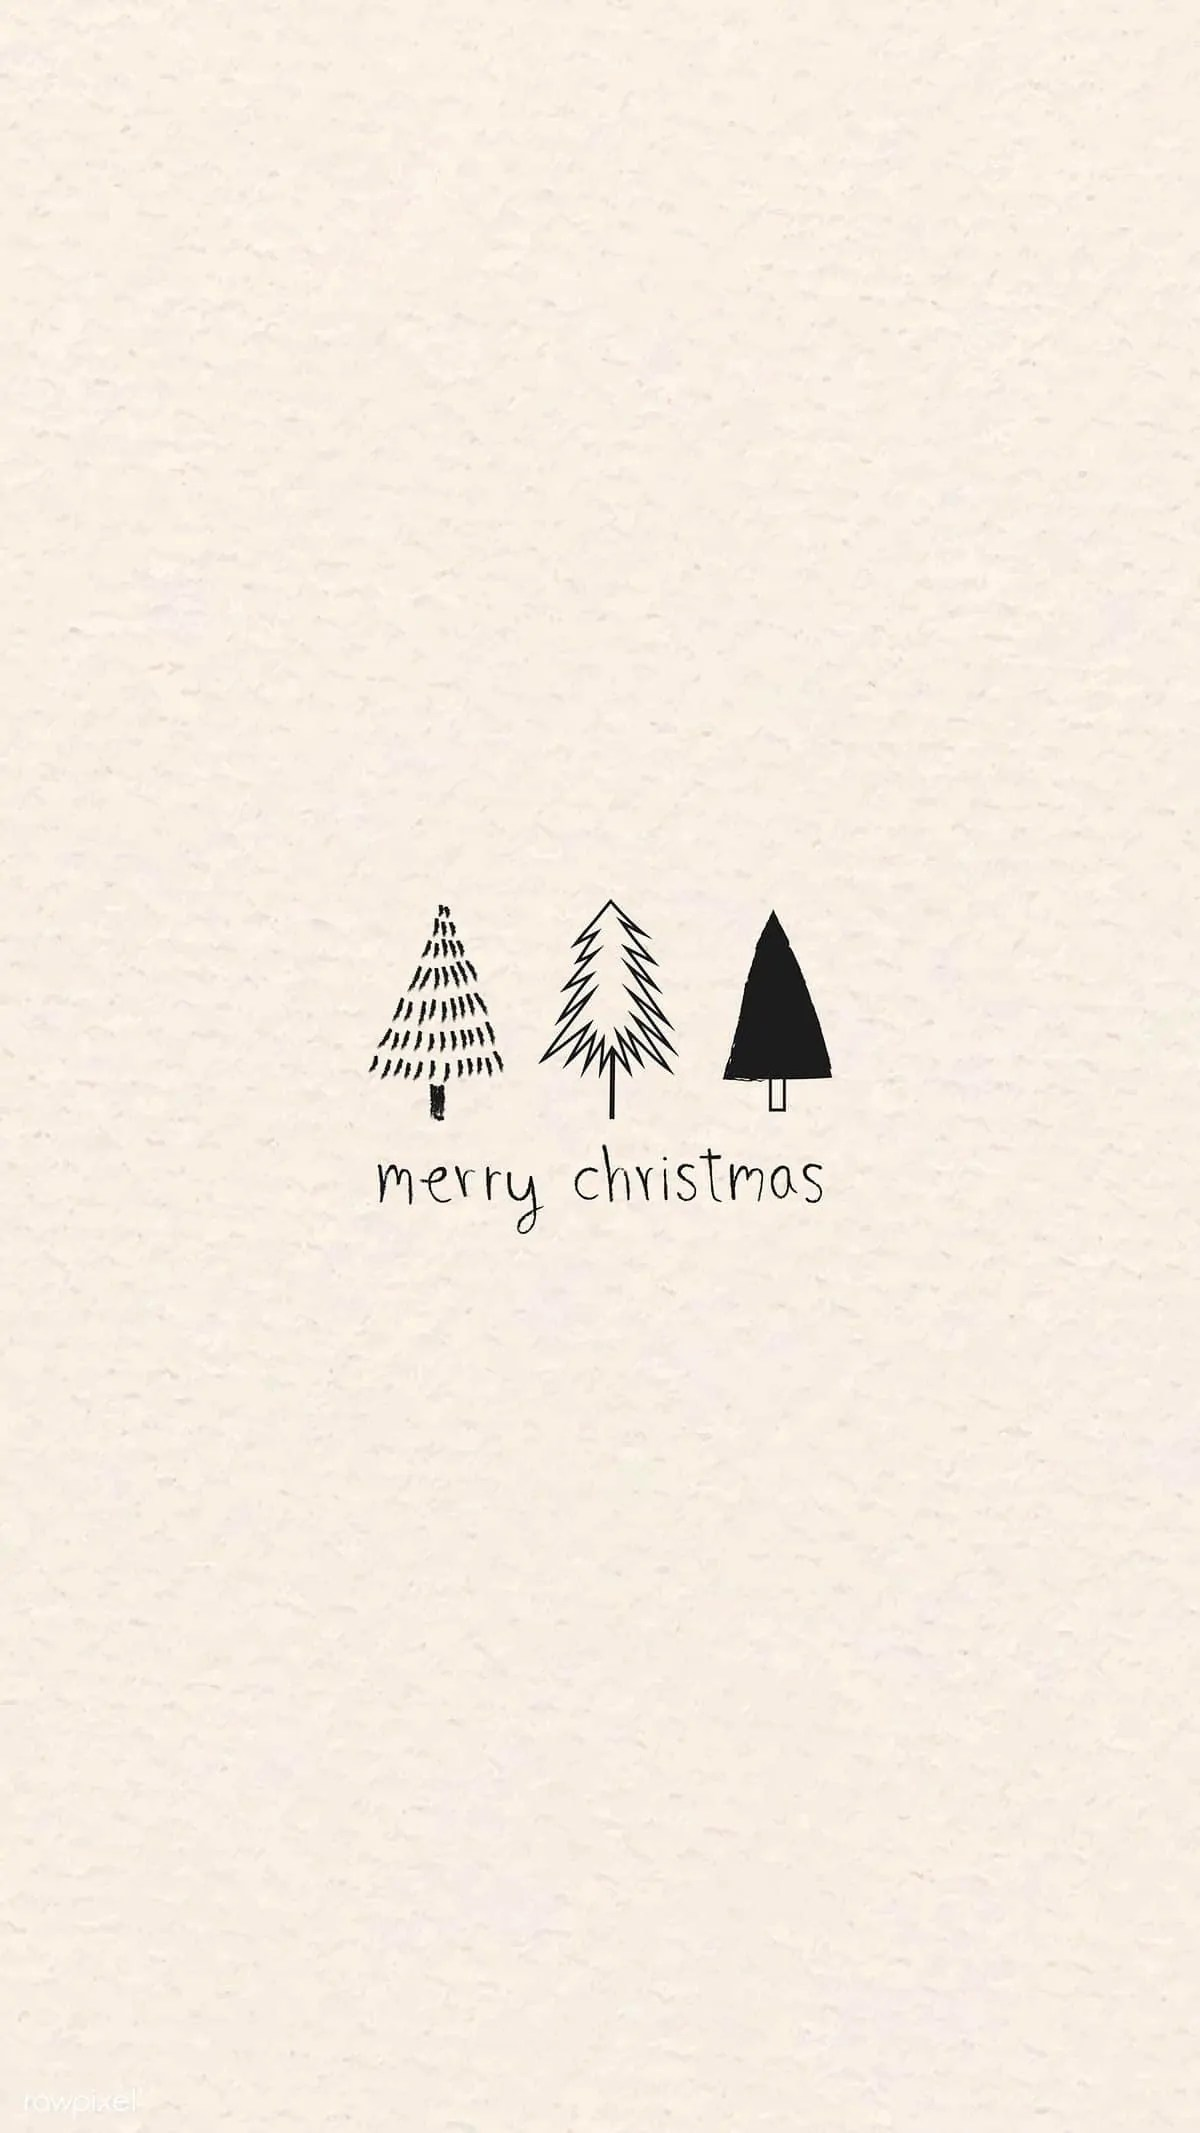 21+ Christmas iPhone Wallpapers you must SEE! 53